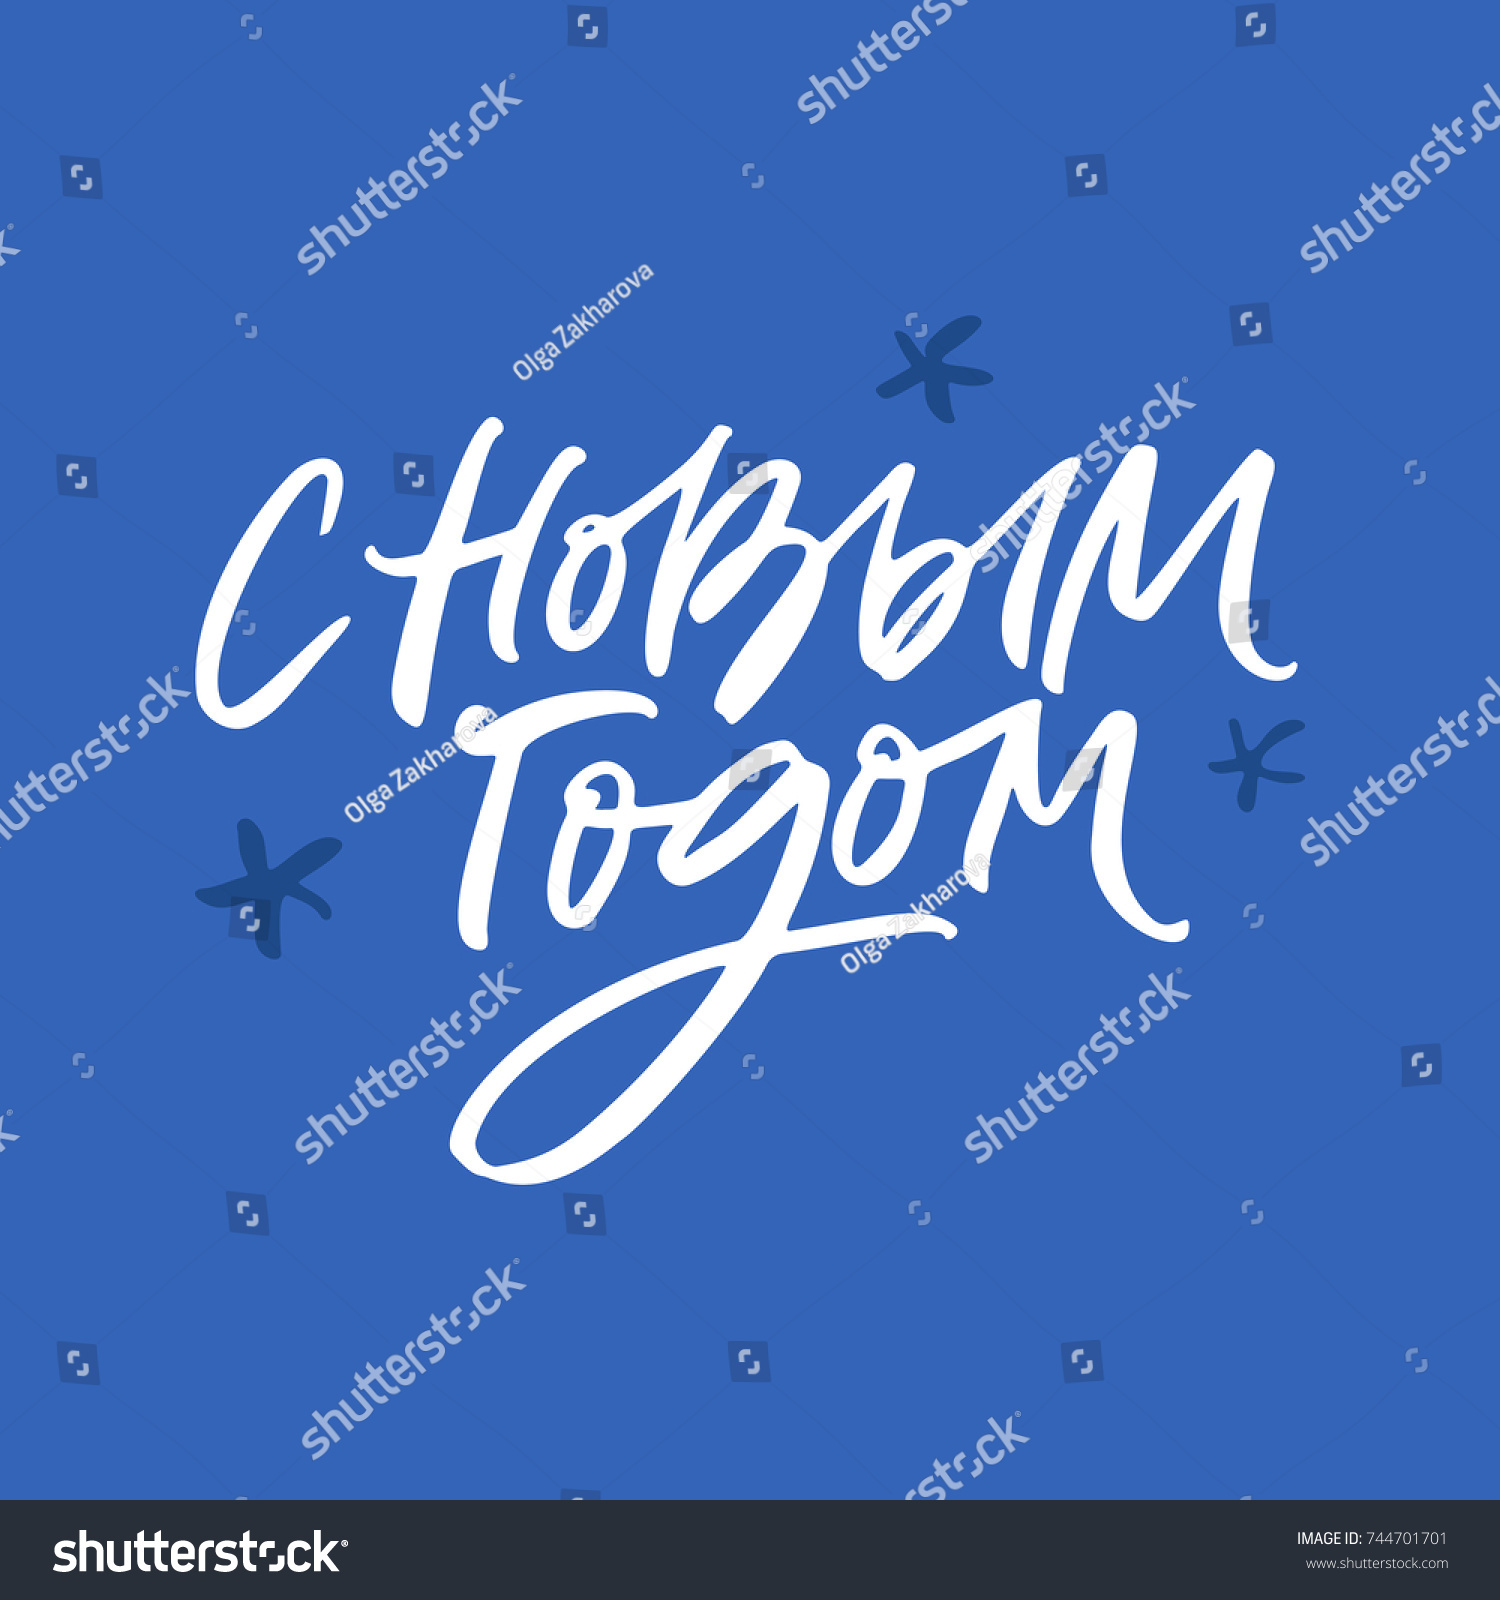 New Year Russian Congratulation Calligraphy Phrase Stock Vector